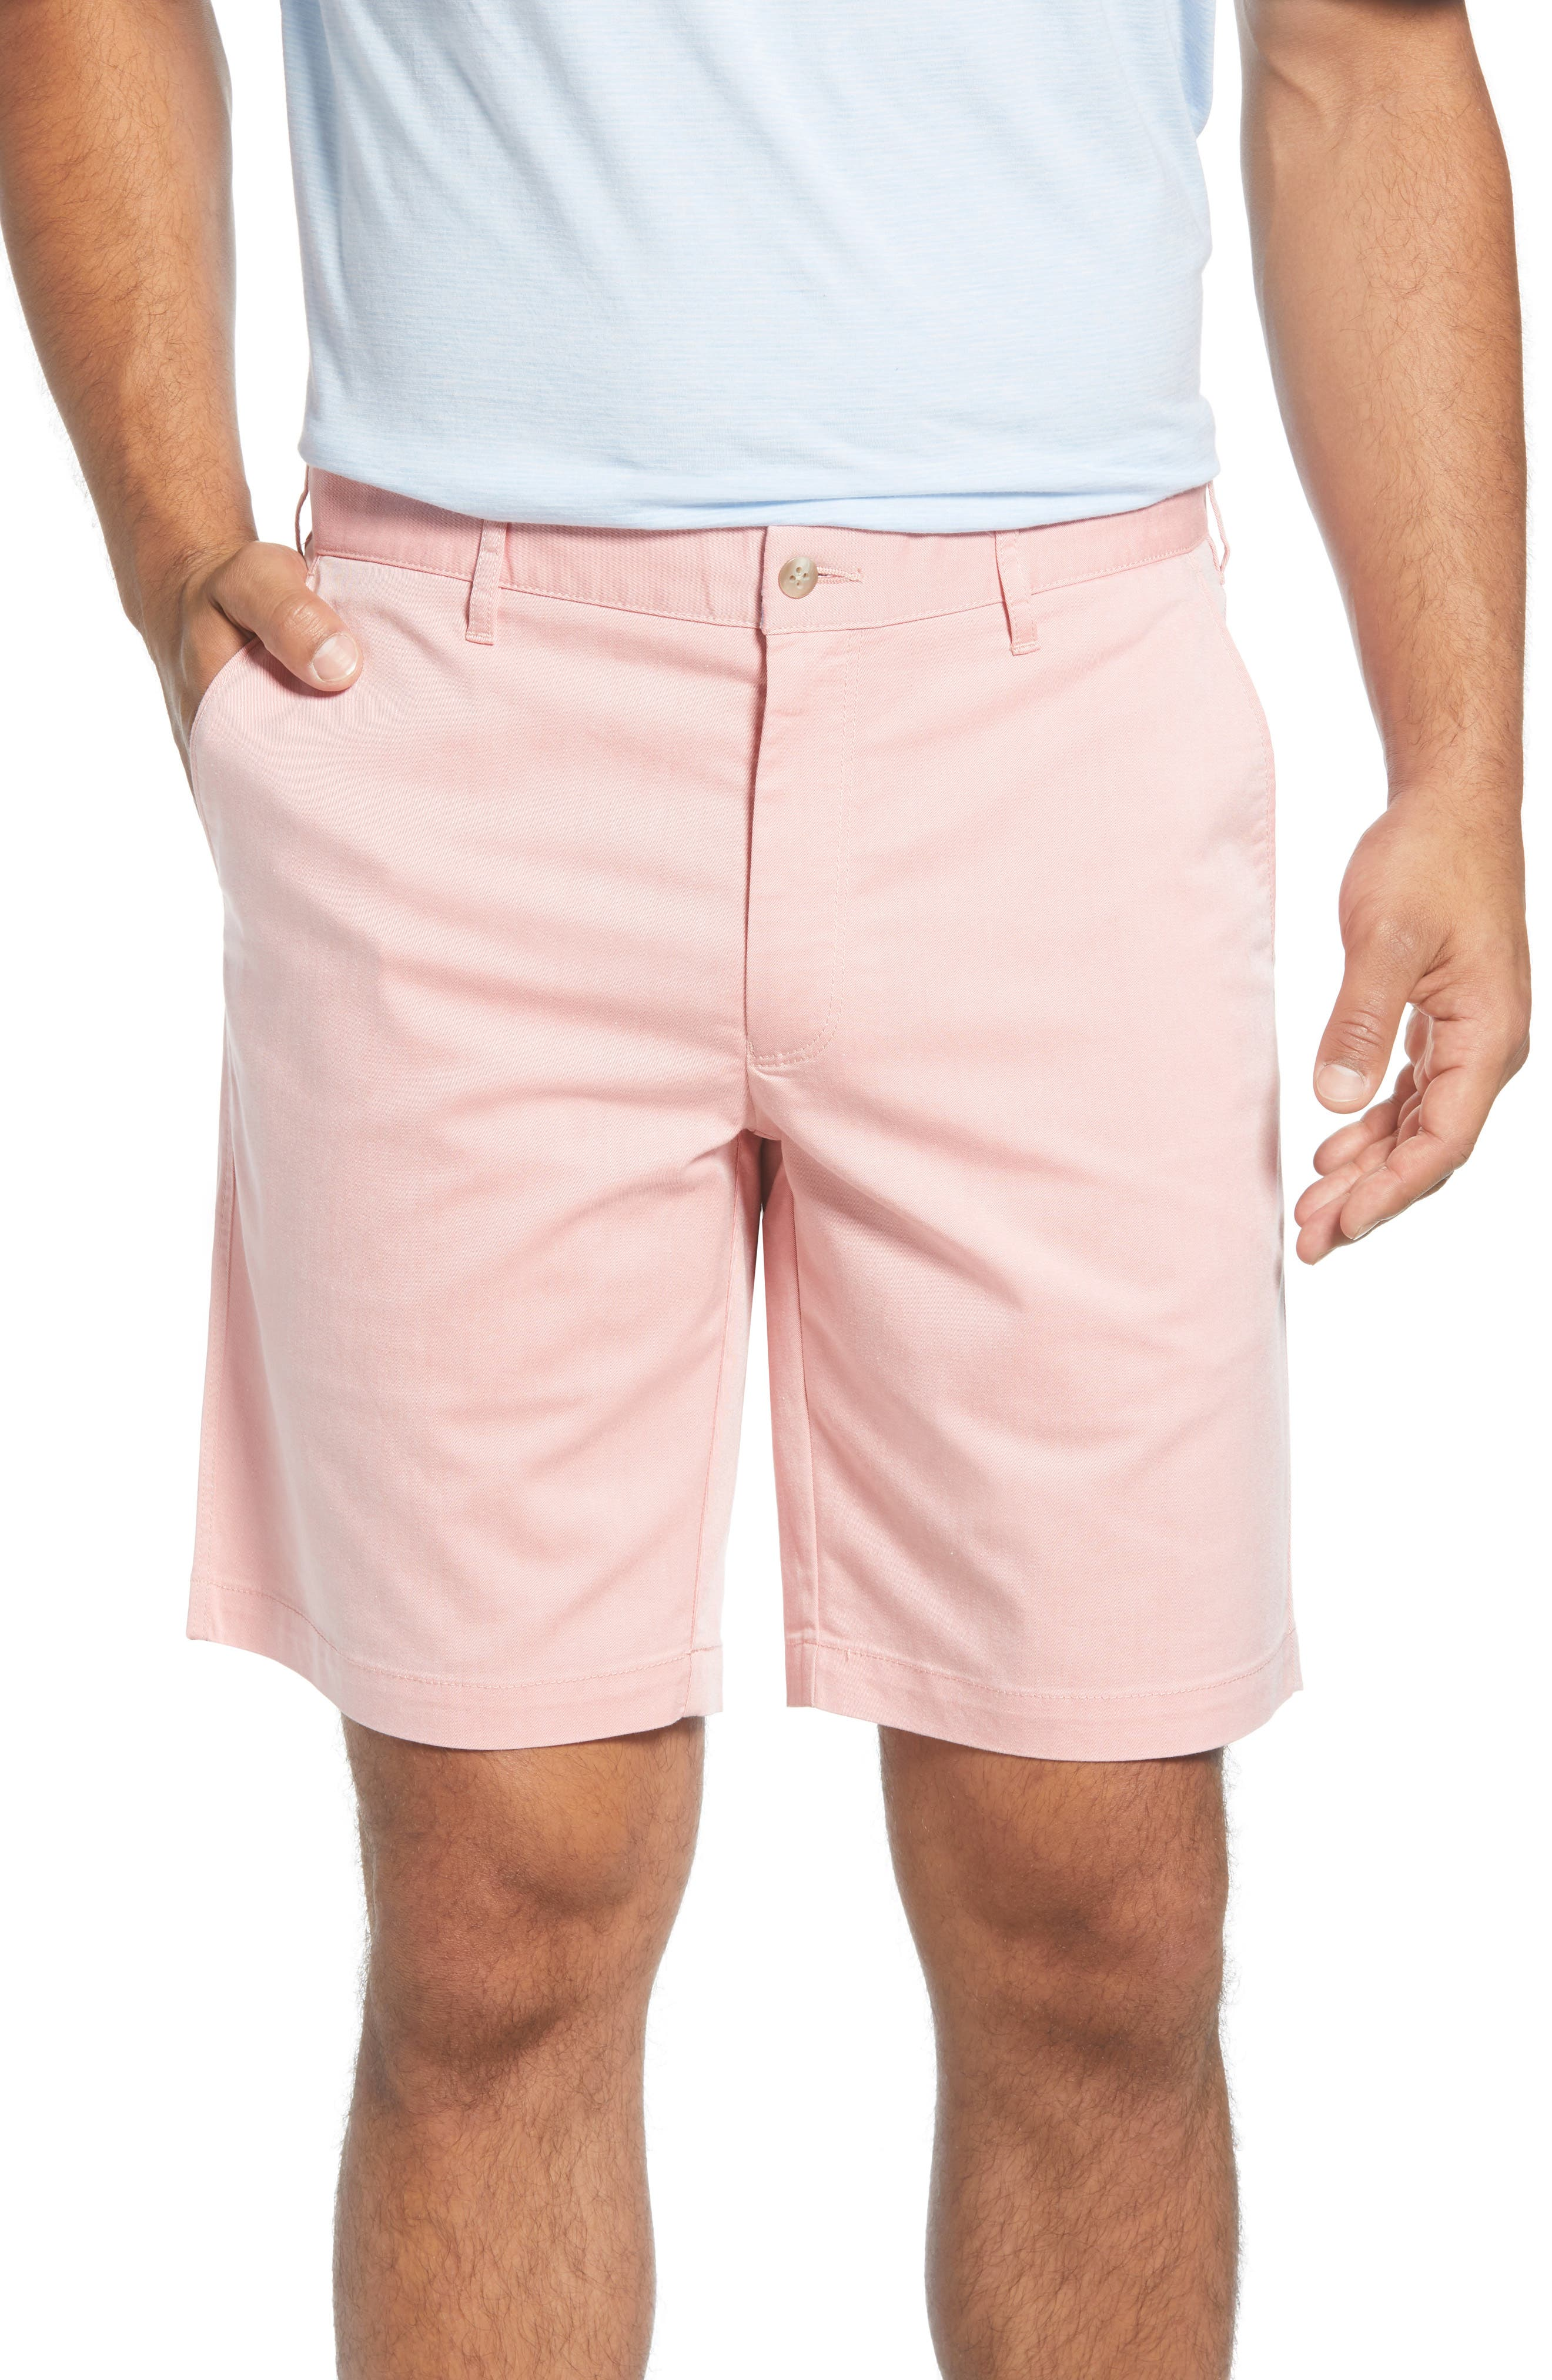 A touch of stretch brings easy comfort to staple flat-front chino shorts styled for versatility in a pale solid that pairs easily across your casual wardrobe. Style Name: Peter Millar Crown Comfort Chino Shorts. Style Number: 5886201. Available in stores.